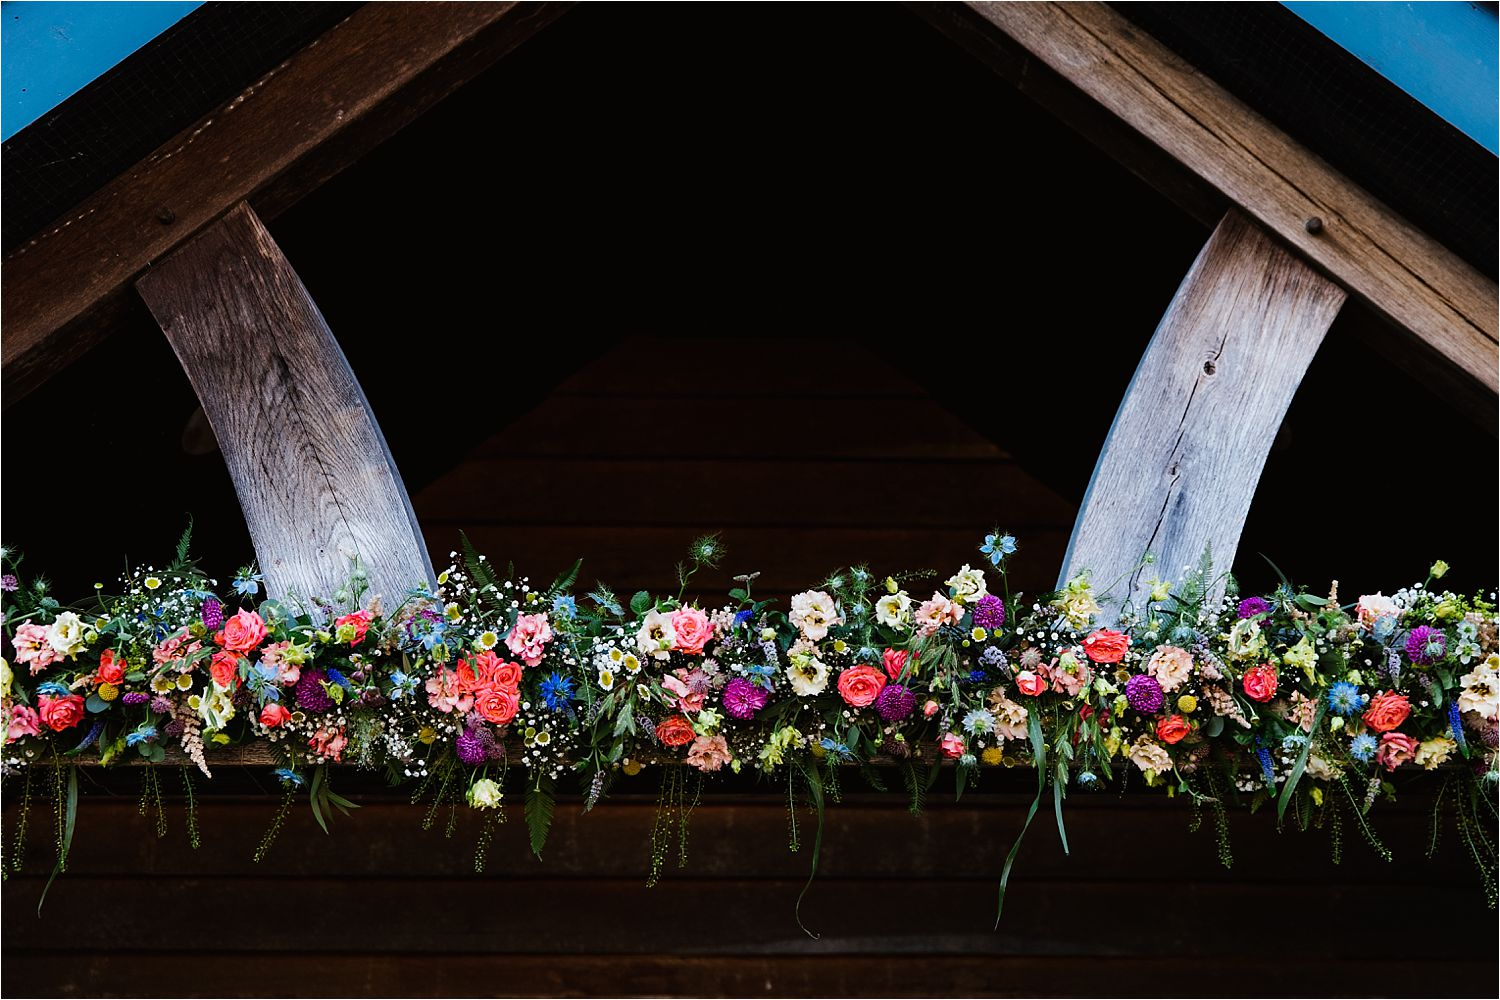 Floral artistry by Green Earth Flowers at Sandhole Oak Barn wedding venue, Congleton.